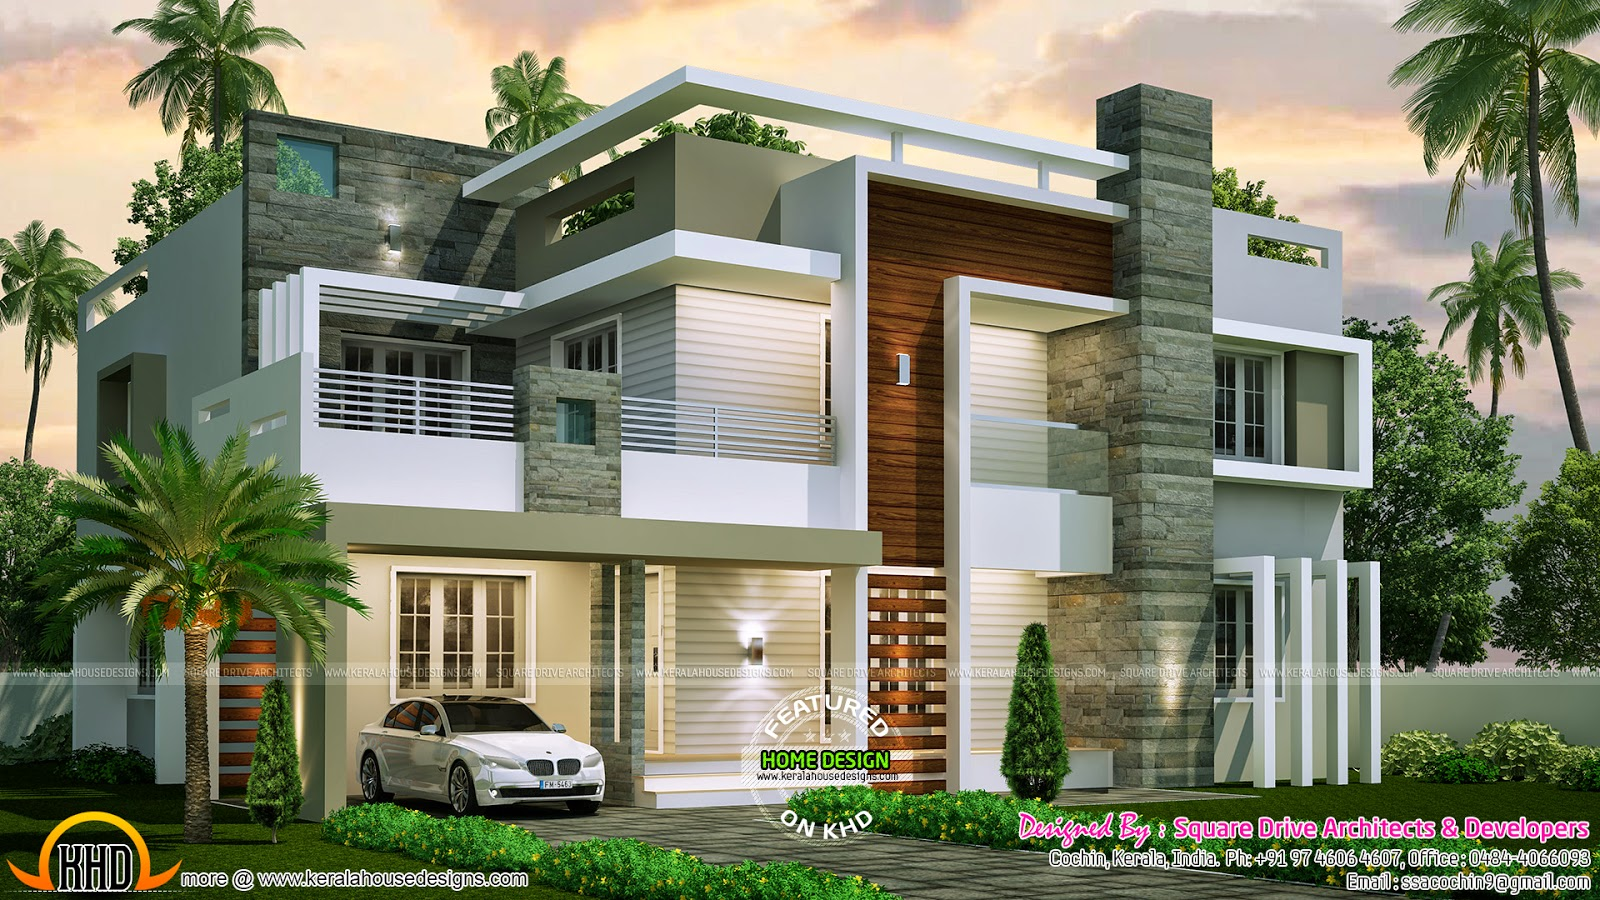 4 bedroom contemporary home design kerala home design for 4 bedroom modern house plans